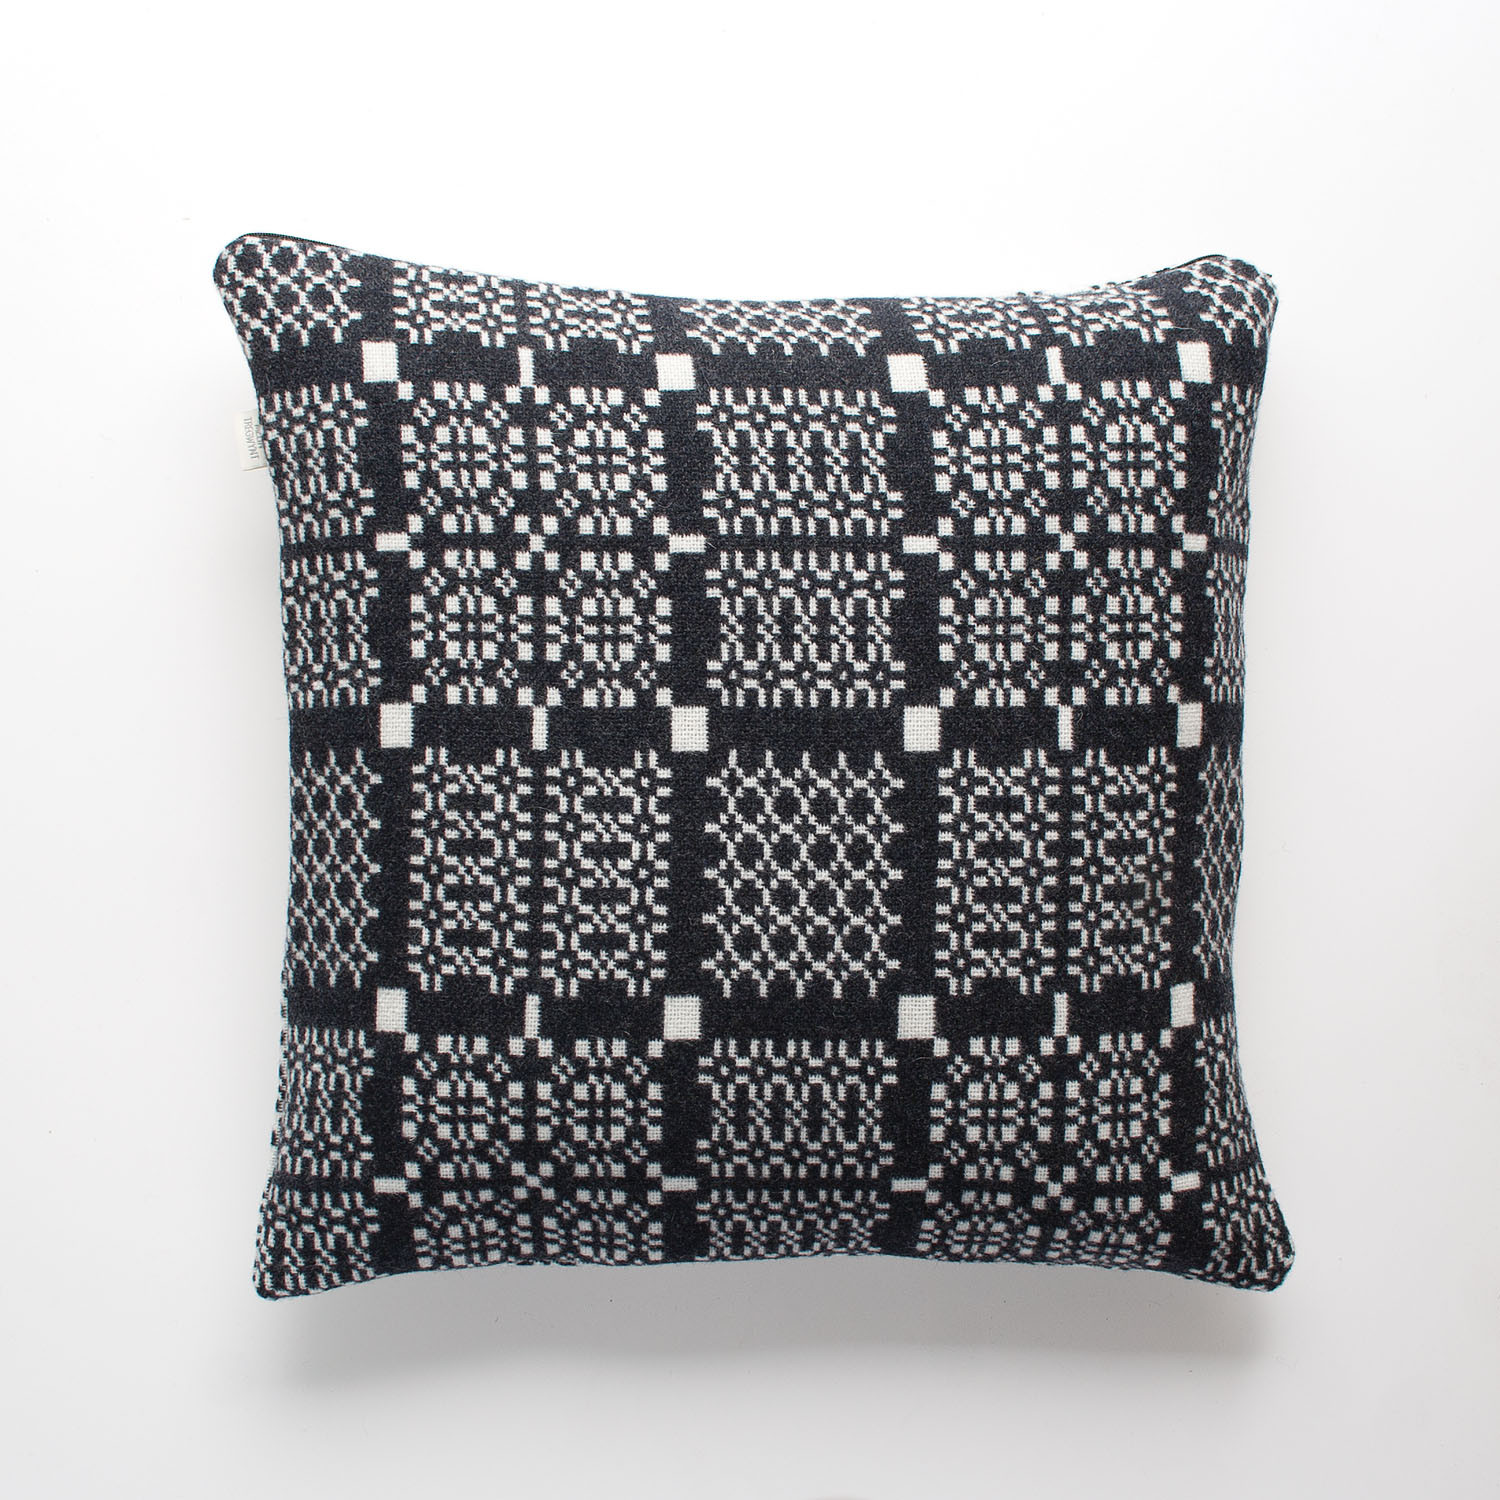 Knot Garden graphite cushion